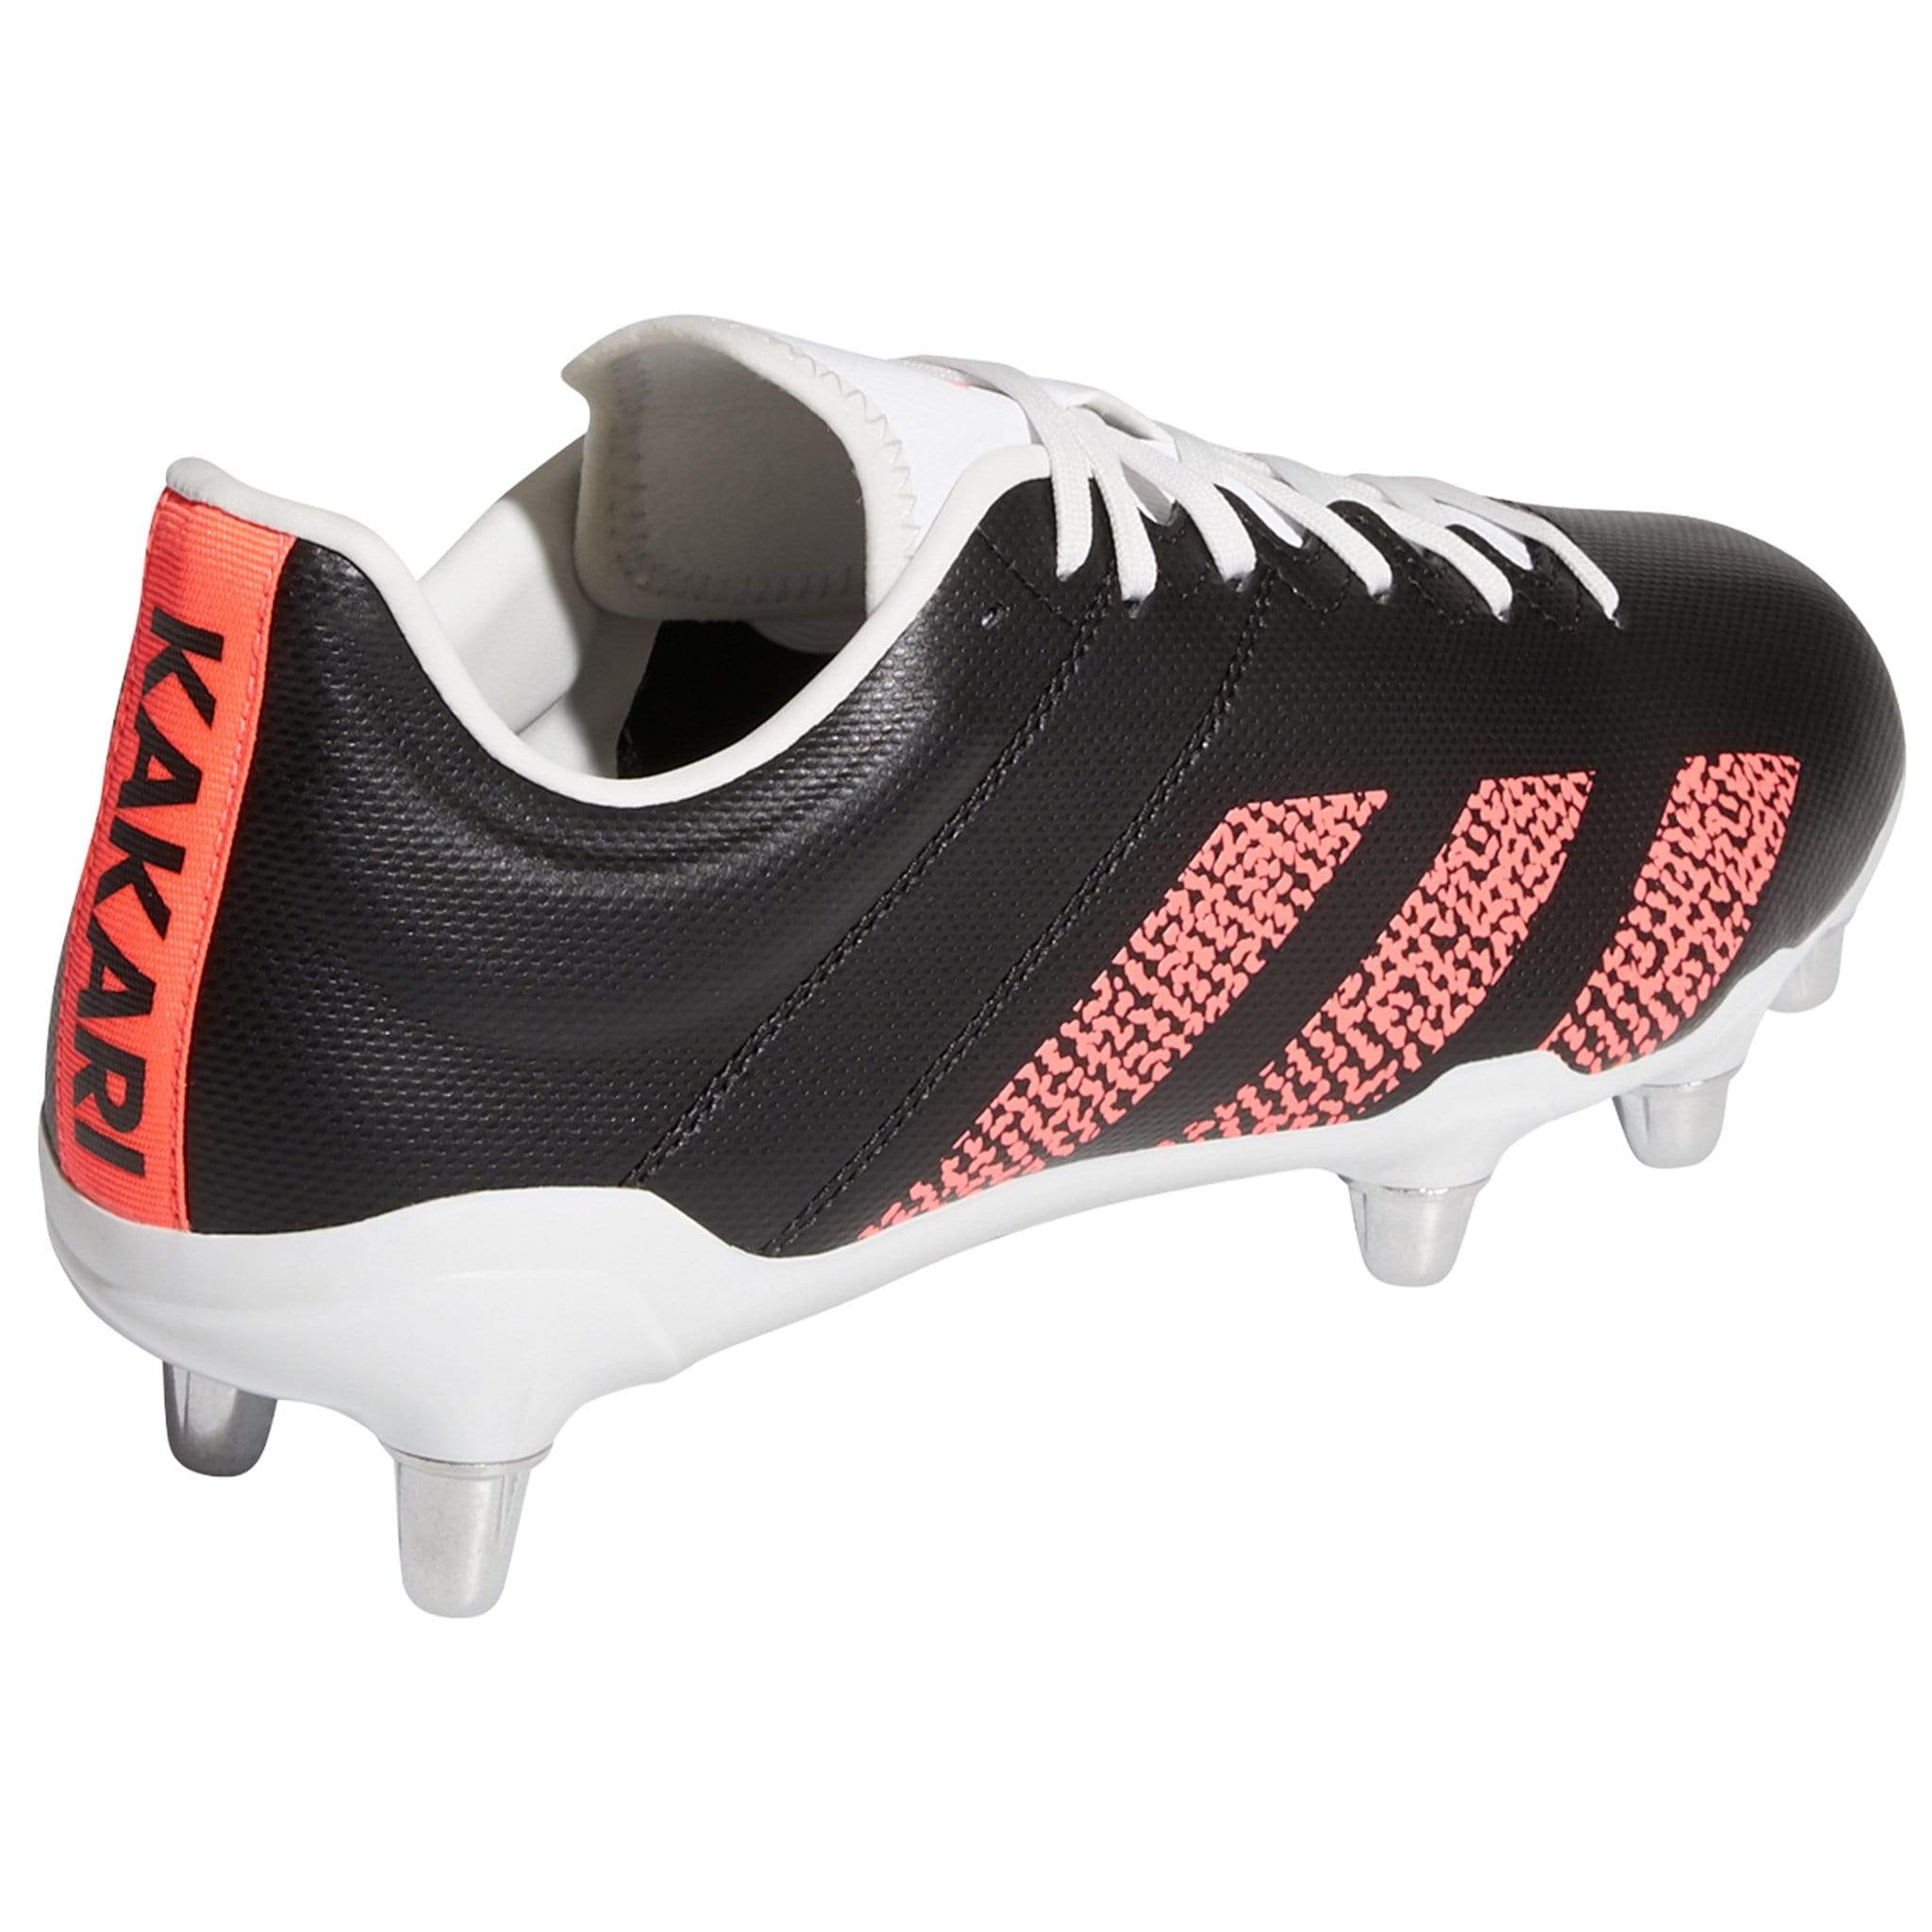 Alternate Side View Black Rugby Boot With Signal Pink Stripes